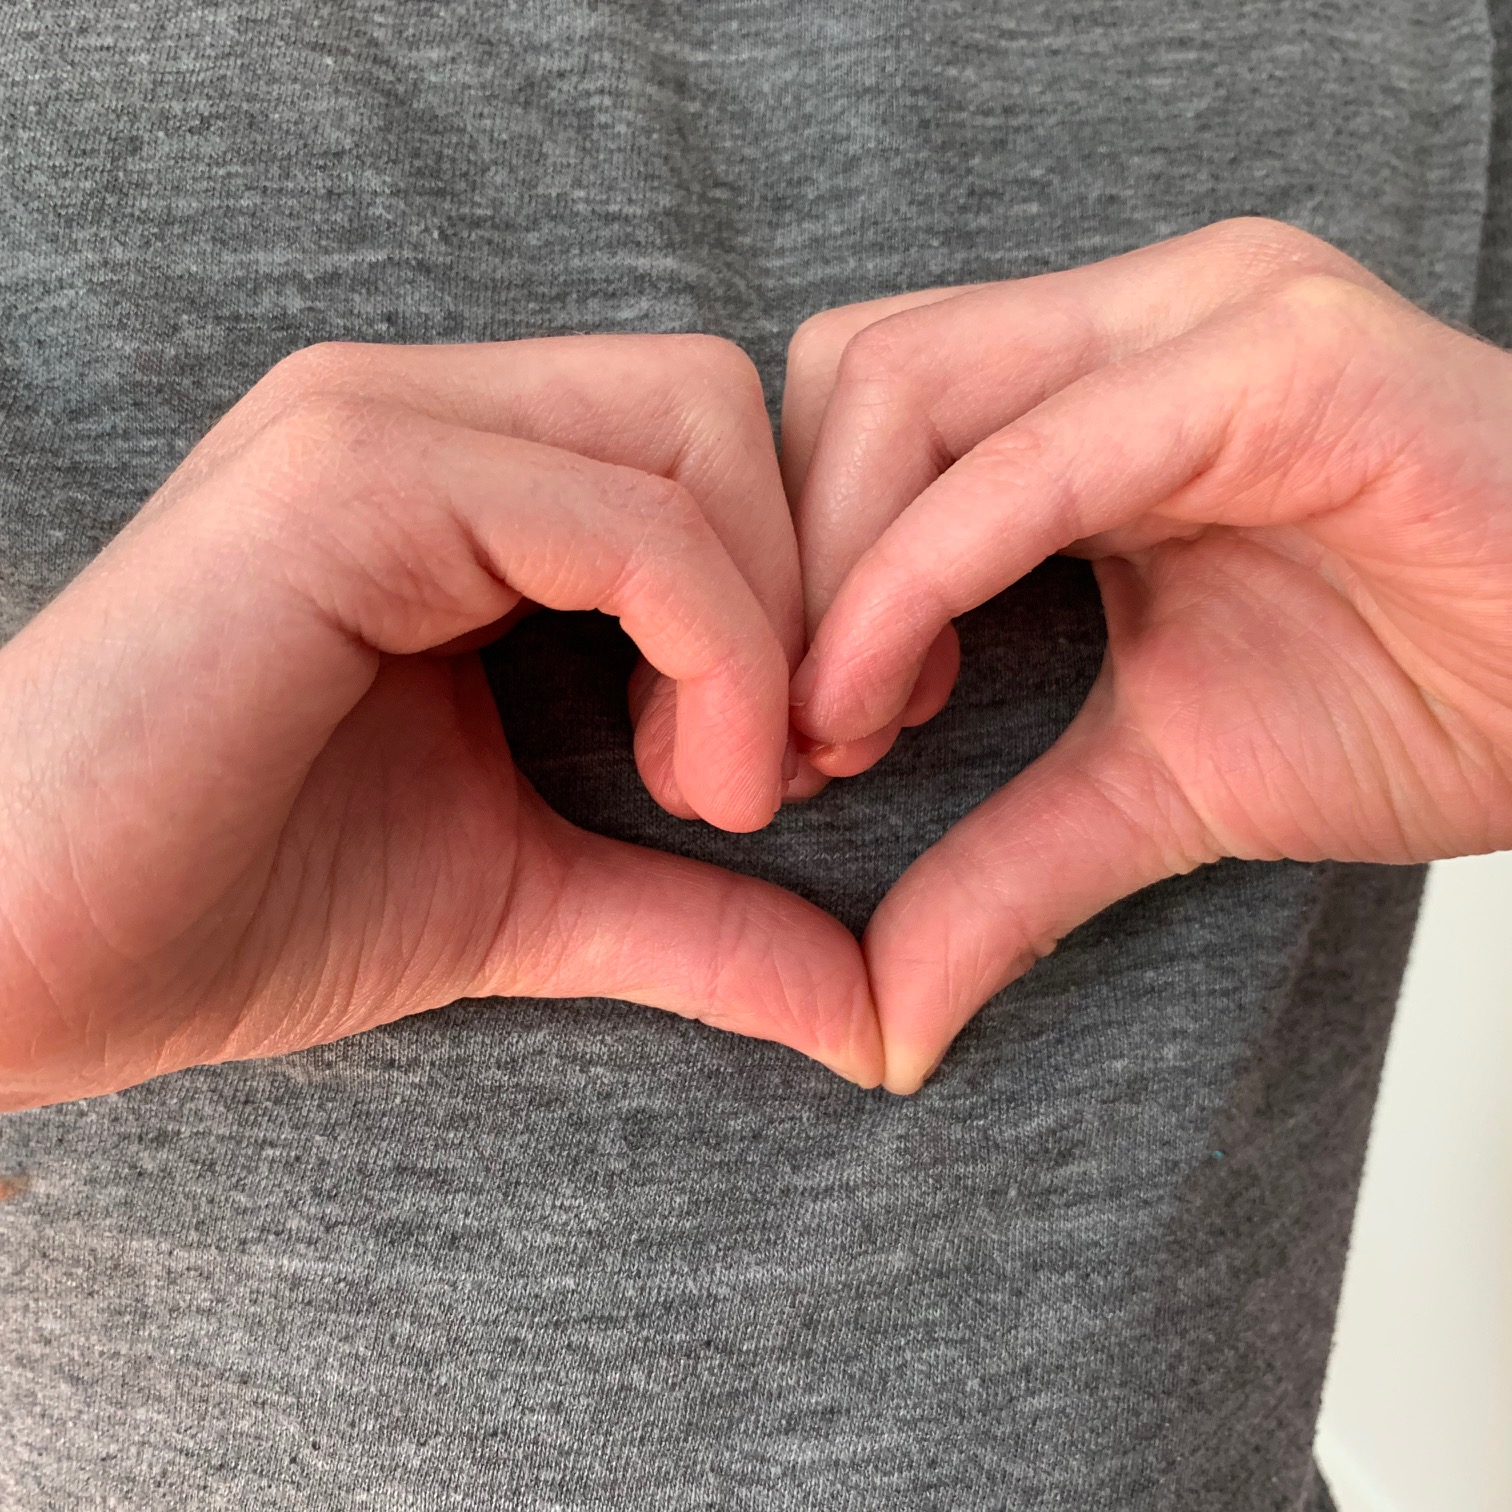 2 hands in the shape of a heart